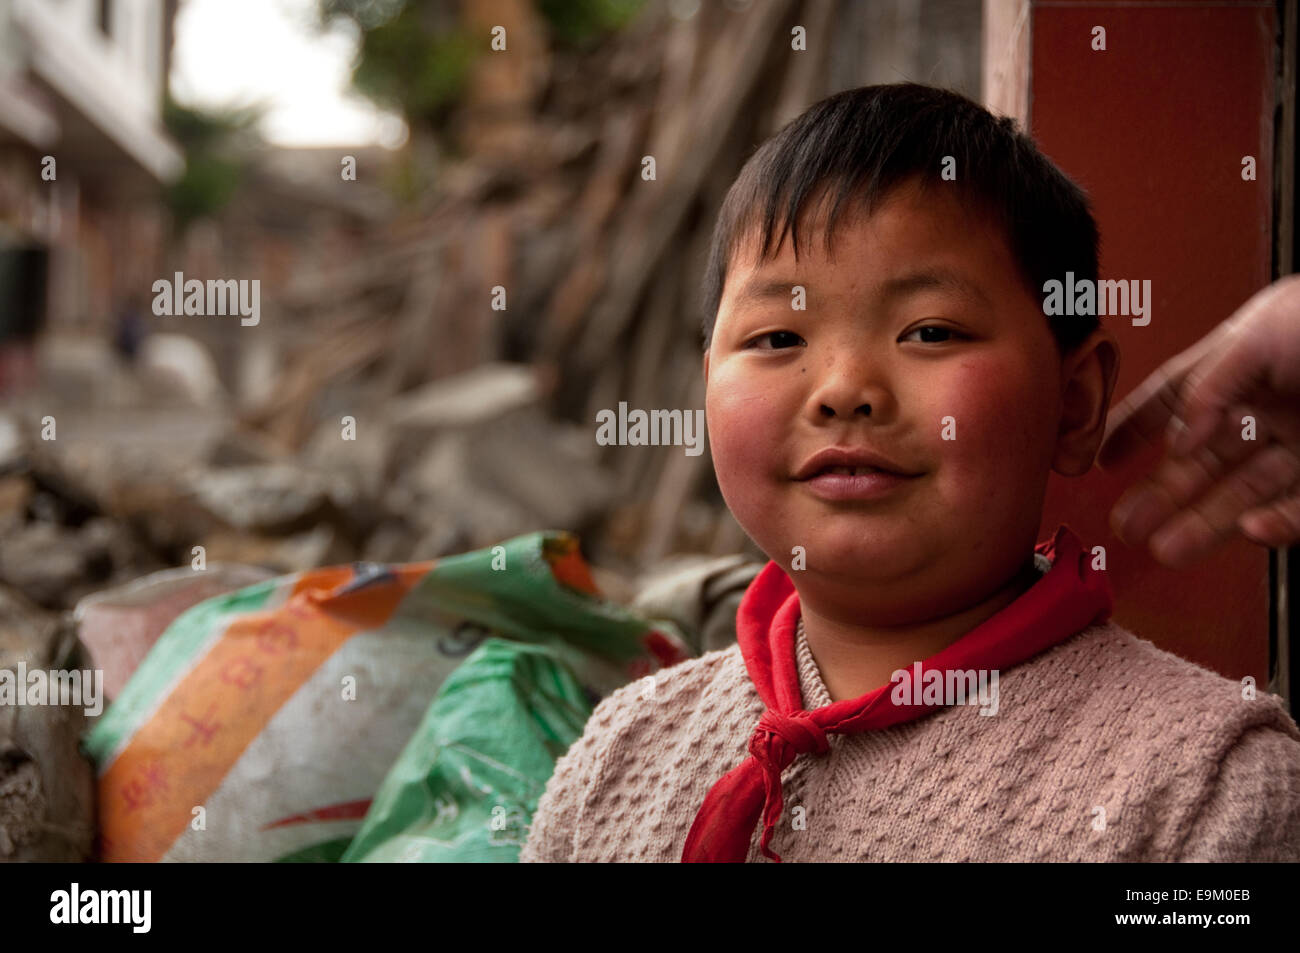 Young Chinese boy with red neckerchief, Suoga, Guizhou Province, China - Stock Image